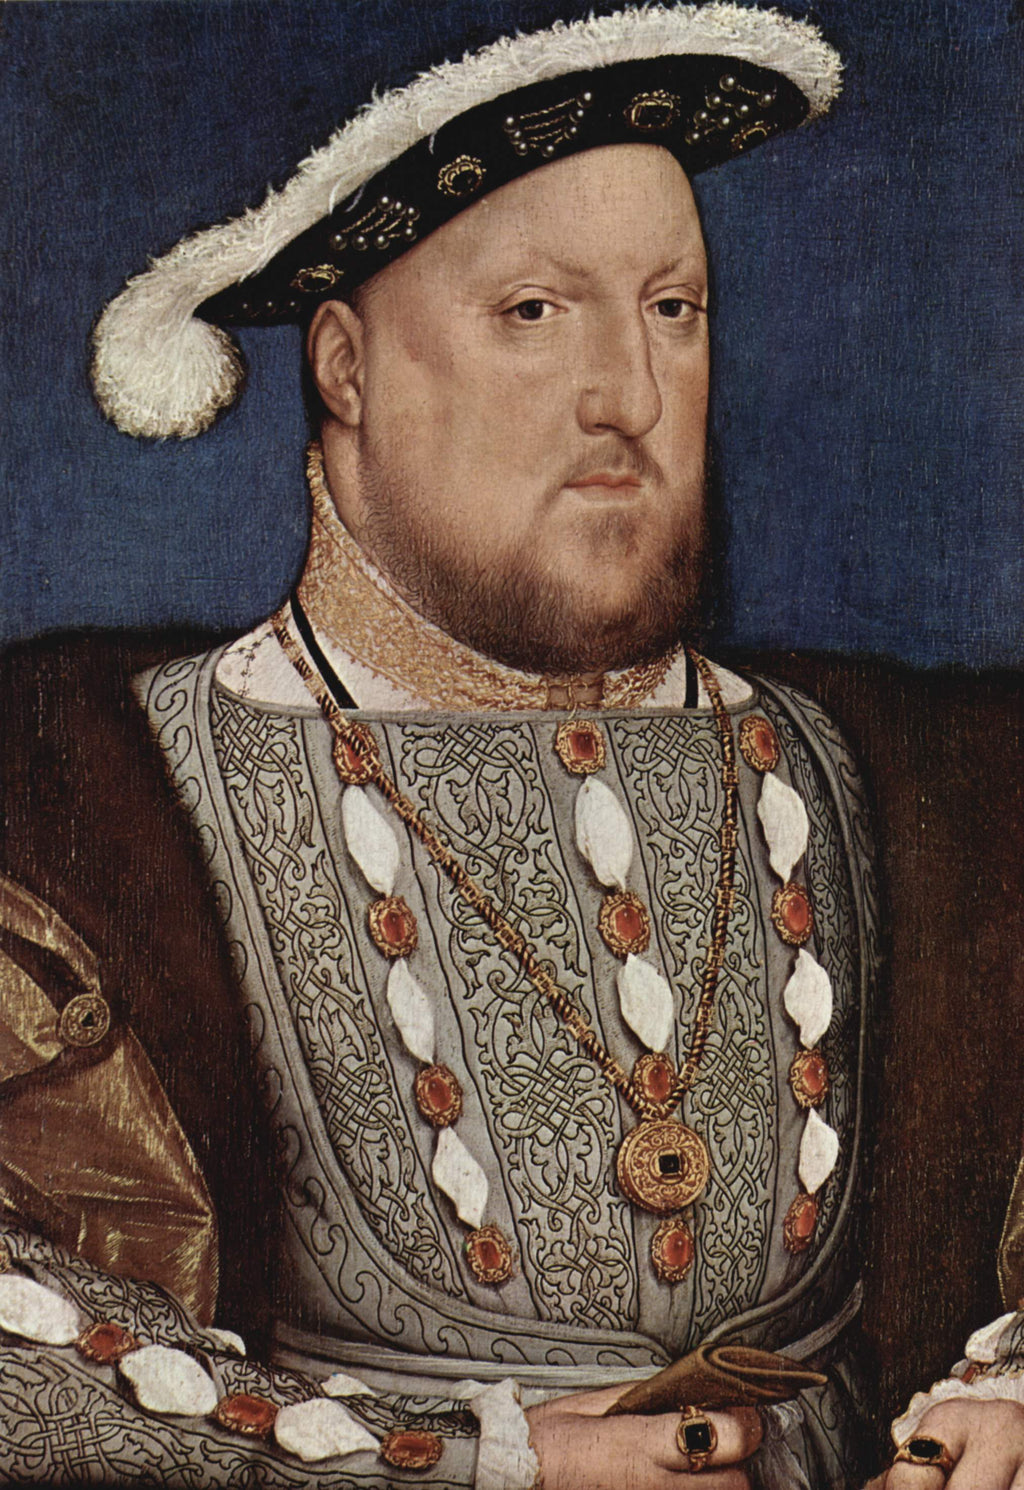 Portrait of Henry VIII, King of England